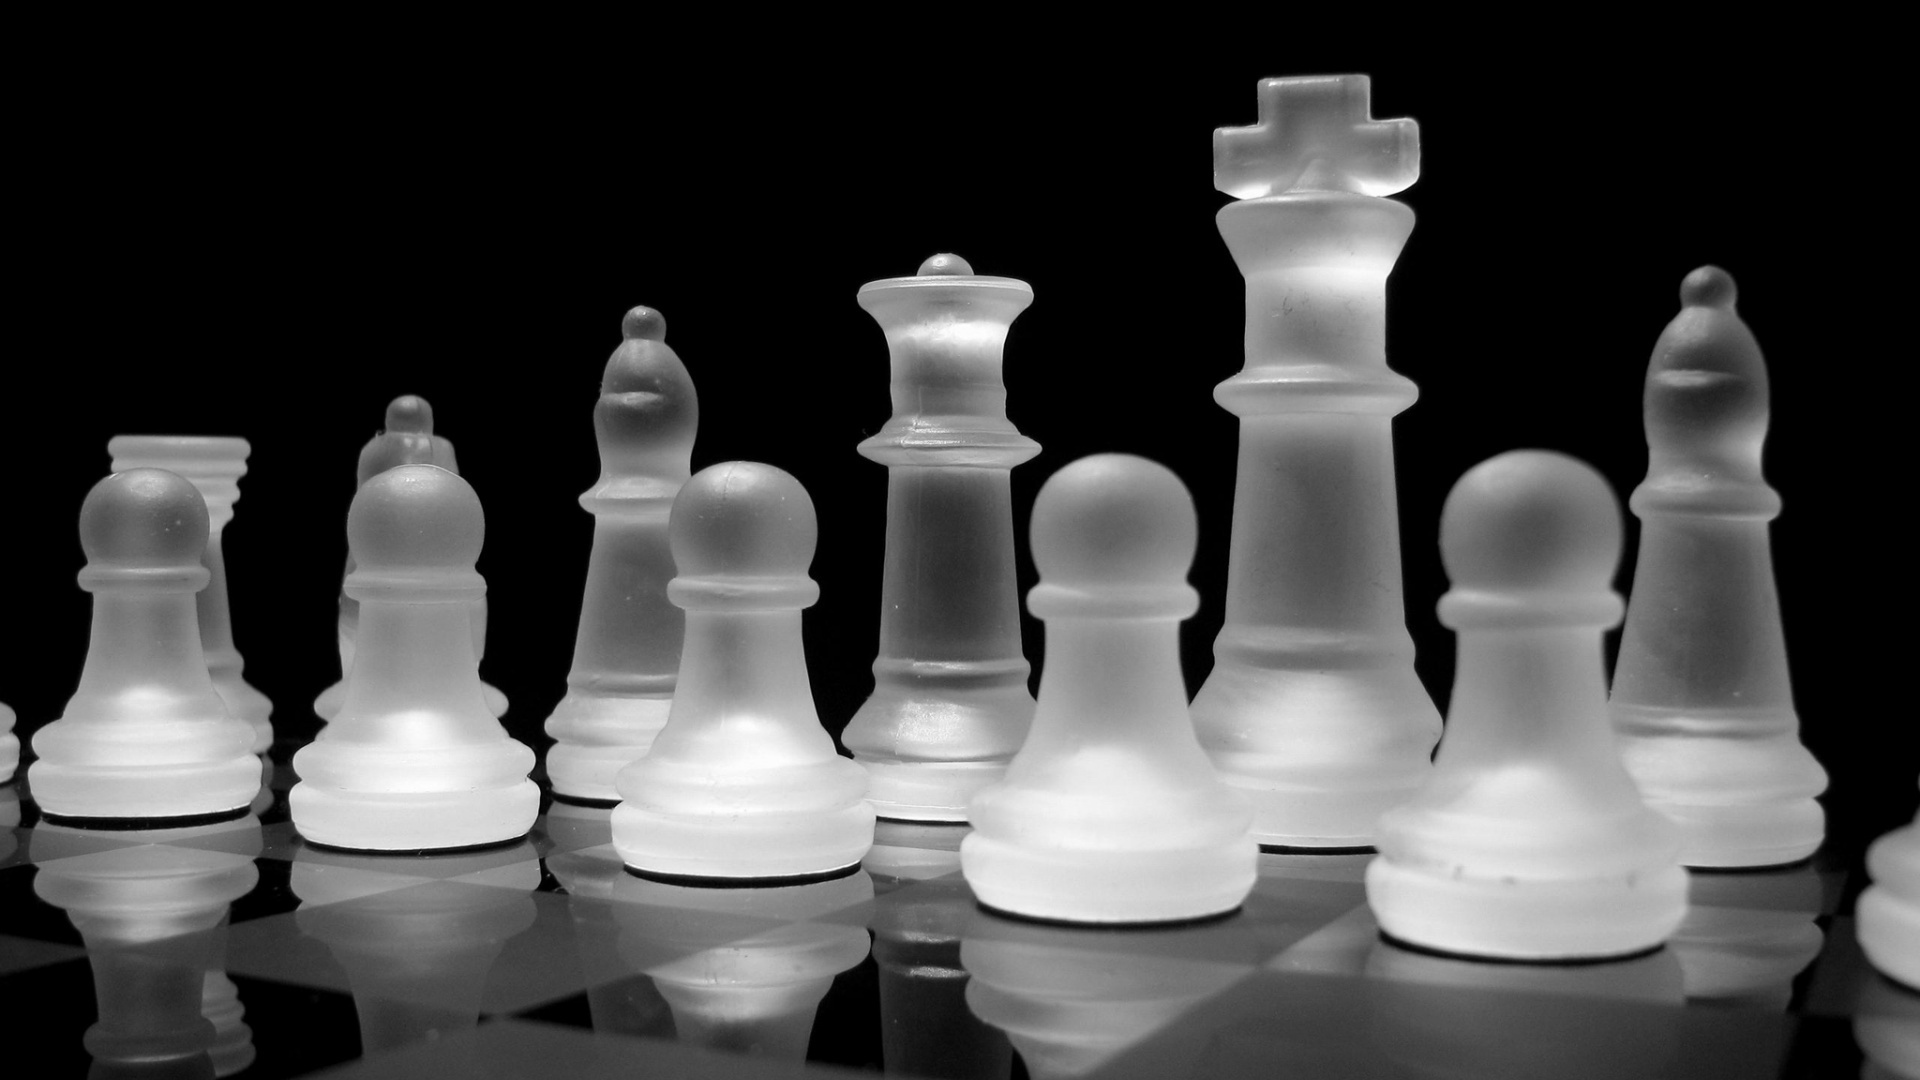 Chess Wallpaper Chess Game Hd Wallpapers: Chess Wallpapers, Pictures, Images